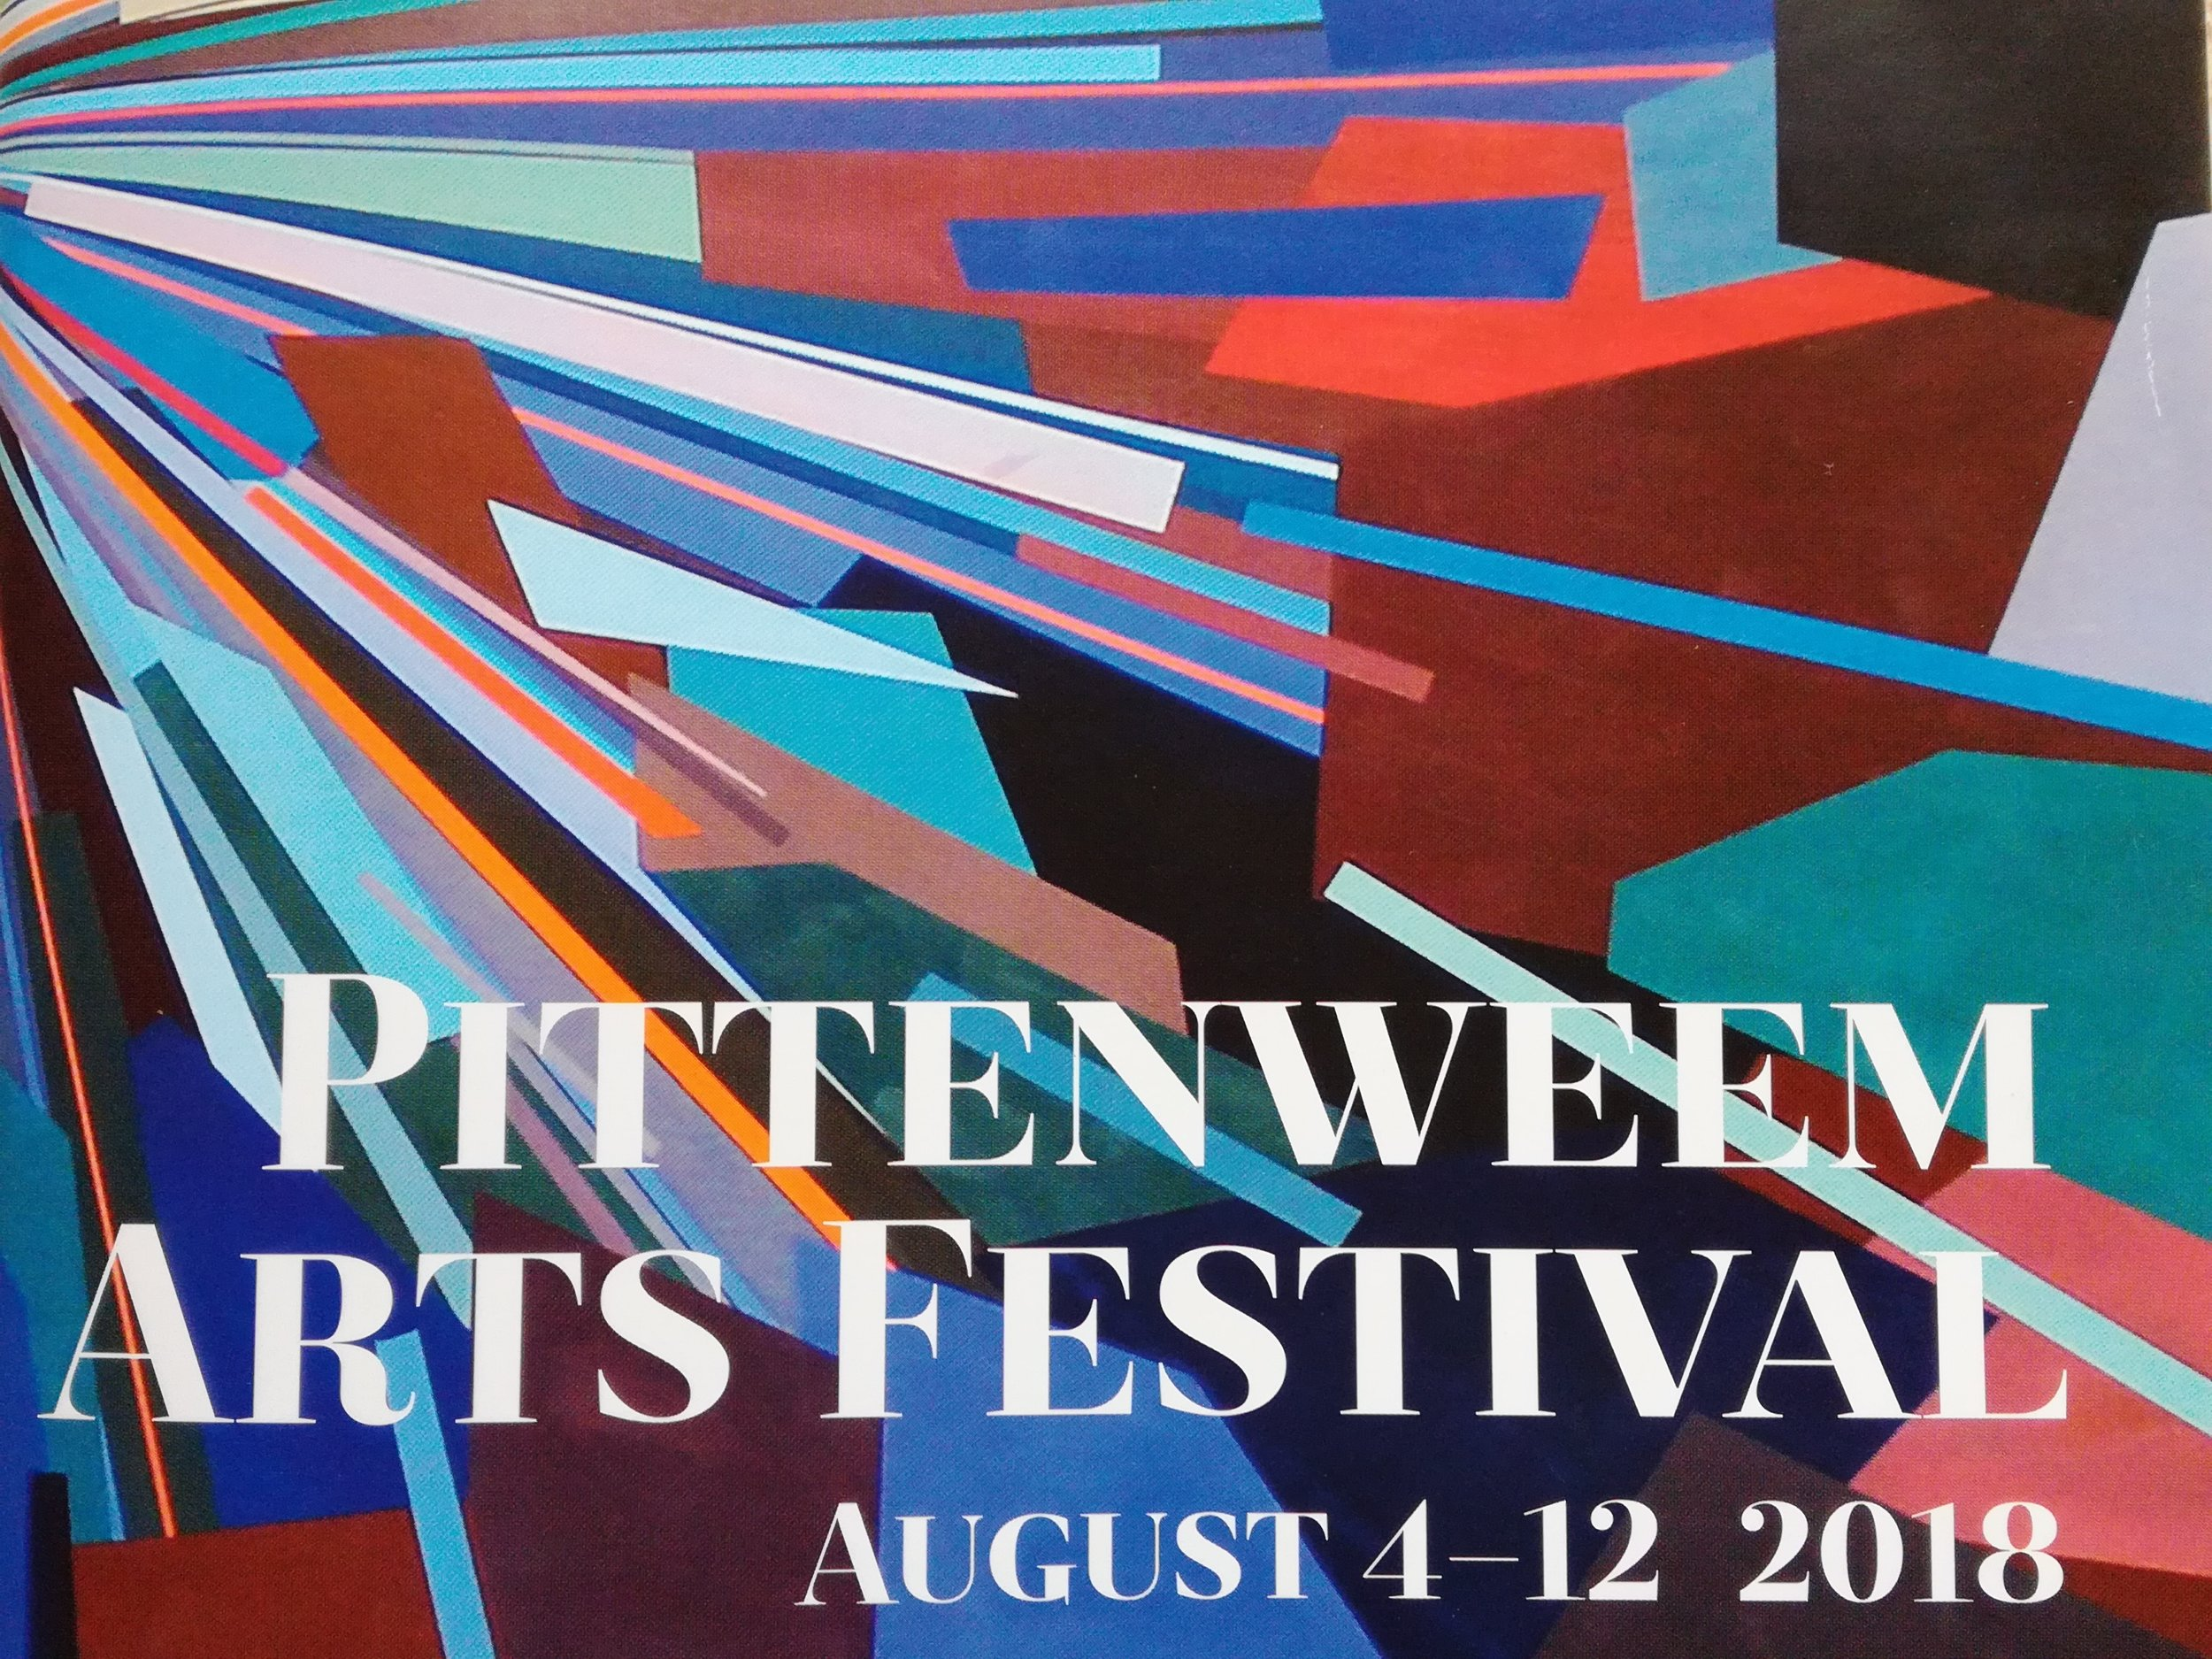 Pittenweem truly comes alive during it's week-long summer arts festival when many a private home becomes a public gallery for paintings, jewellery, pottery and other handicrafts.